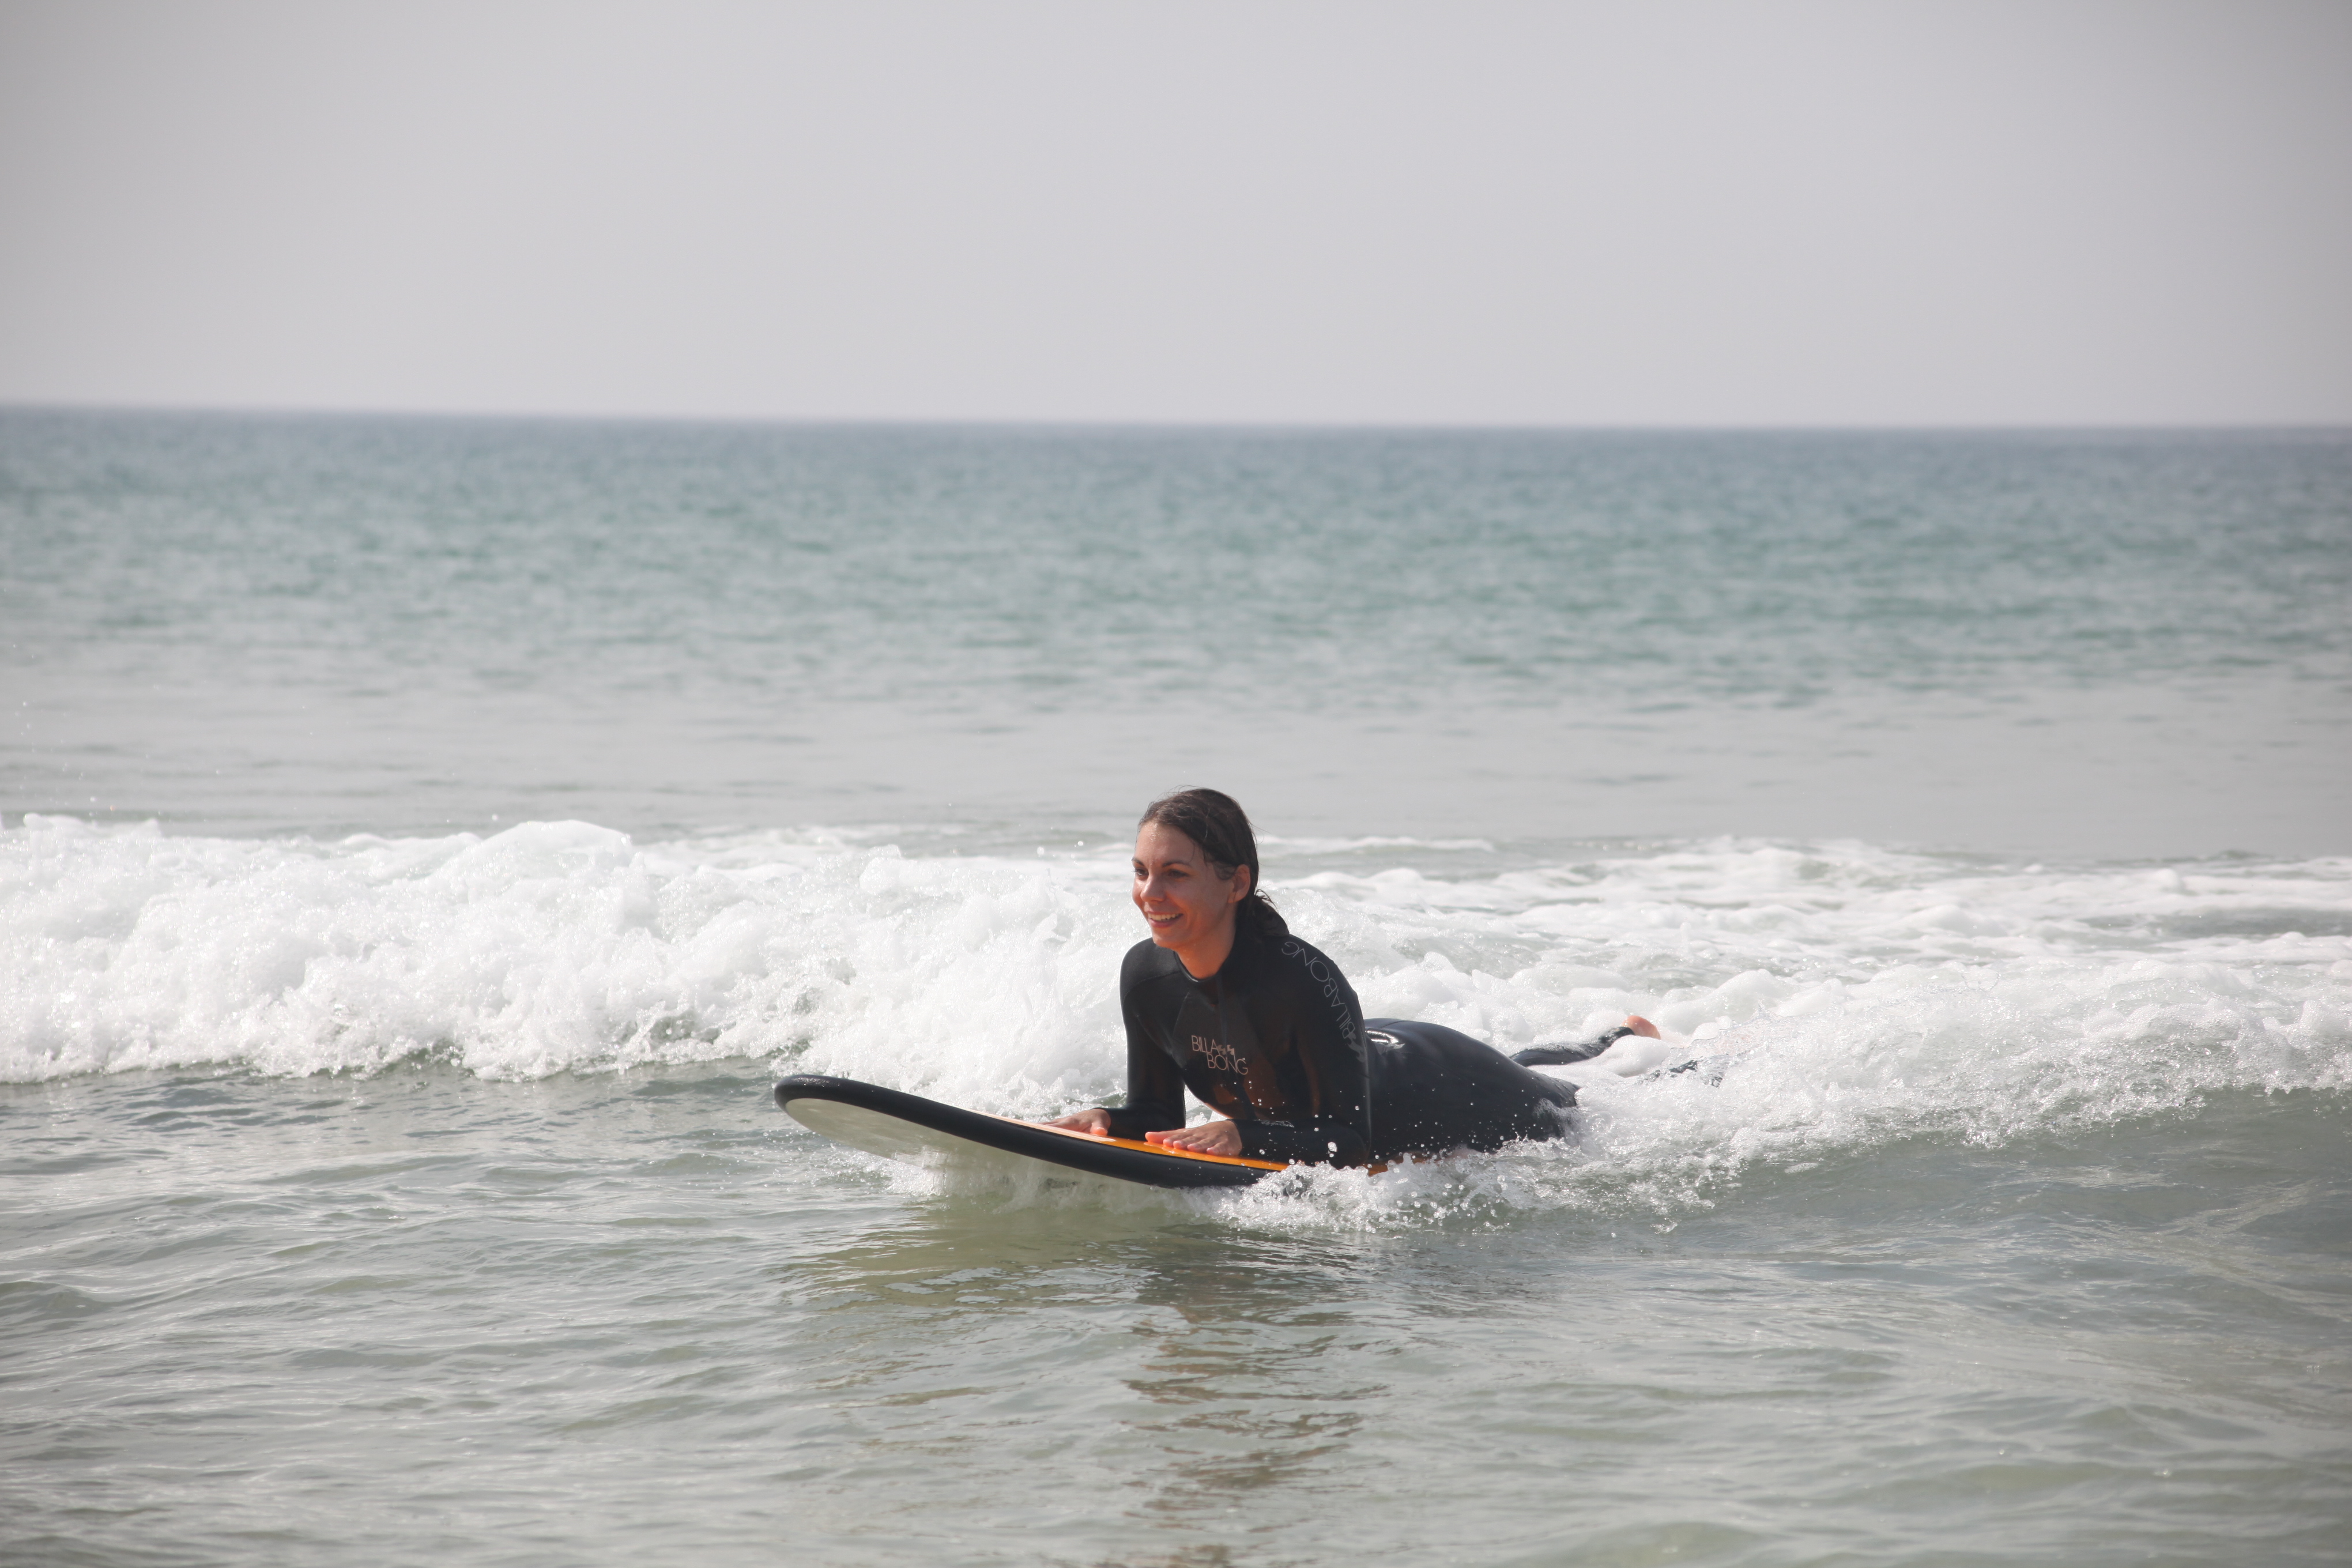 Yoga-Surf-Camp El Palmar Aframe2